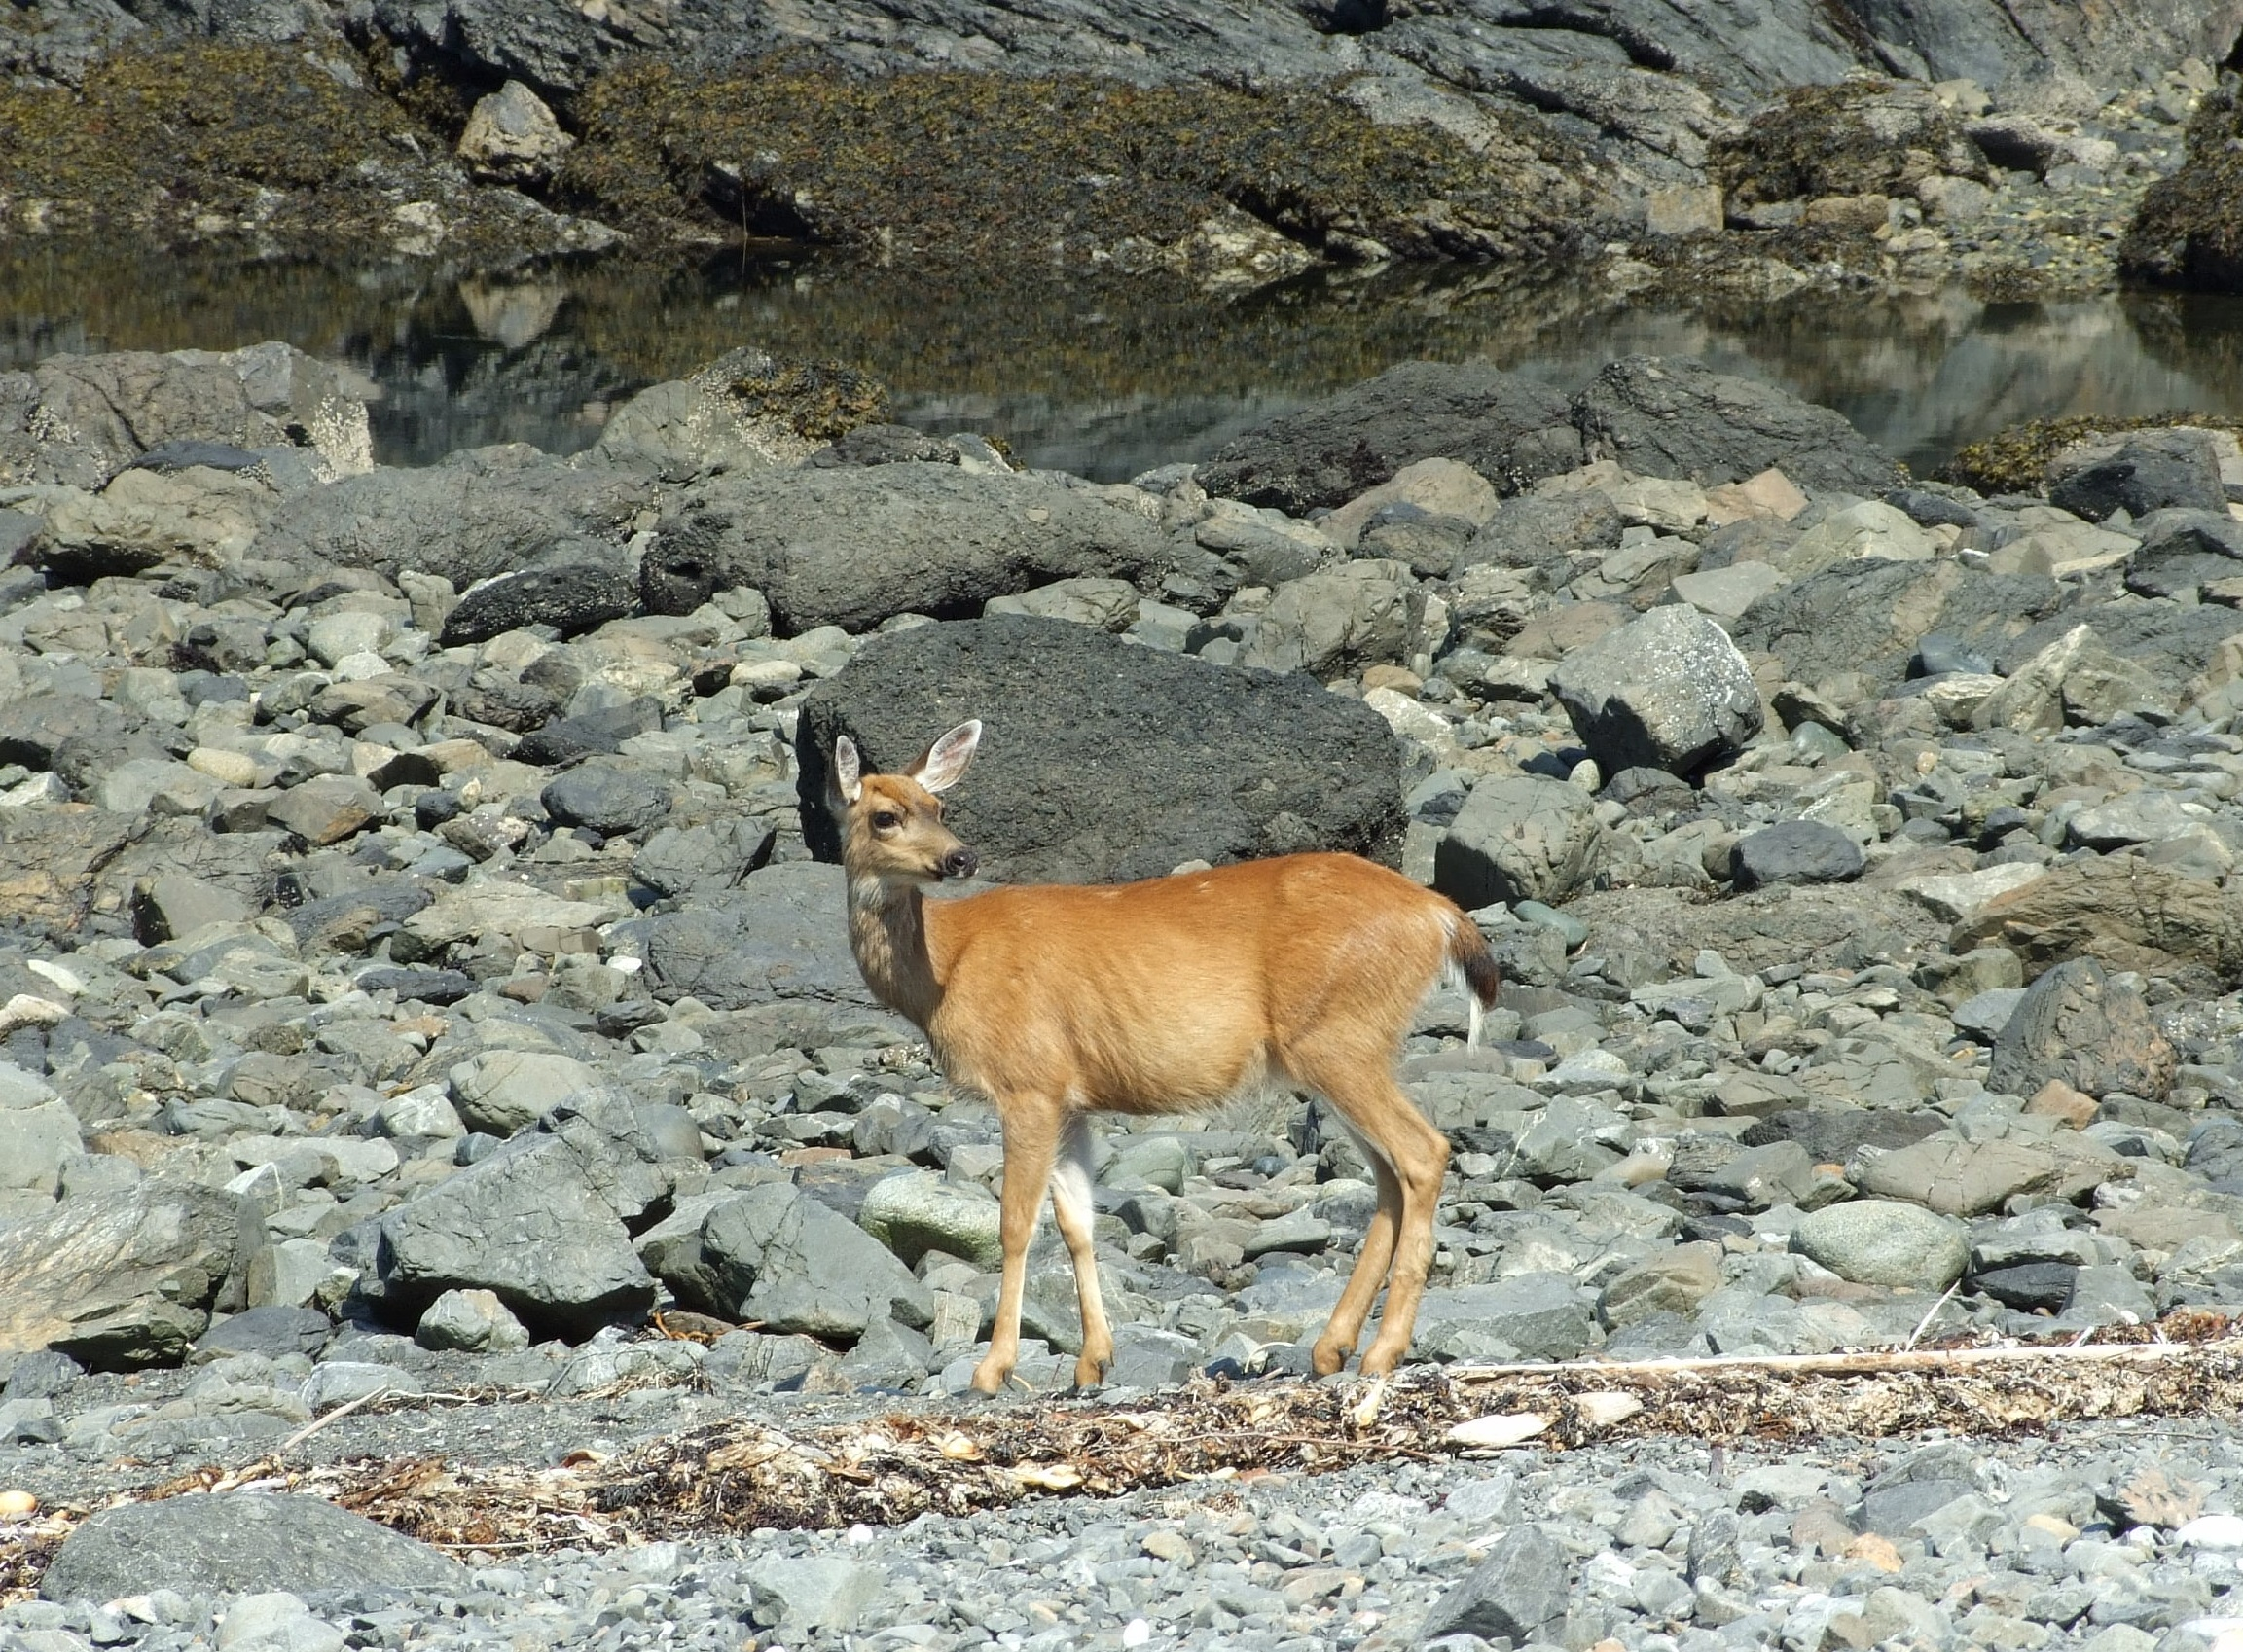 Moving down to the stony shore the doe made an arc between us and the ocean, and, occasionally pausing and checking back to make sure her fawn was following, headed up towards a tree-crowned tidal islet/spur…